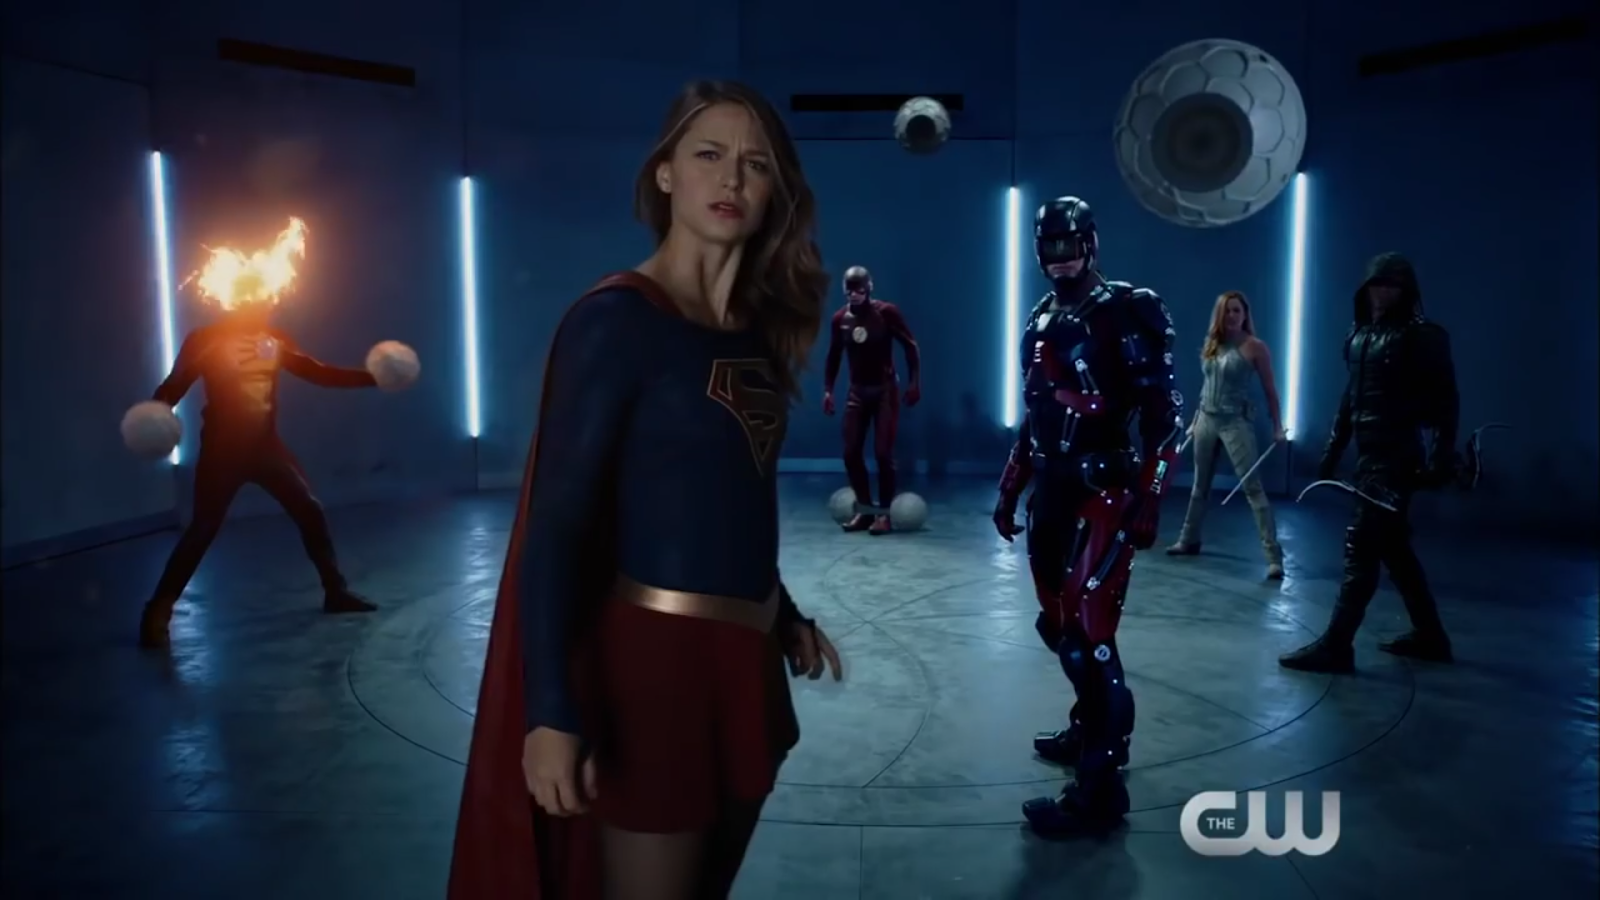 Macrocrossover entre Supergirl, Legends of tomorrow, The Flash y Arrow